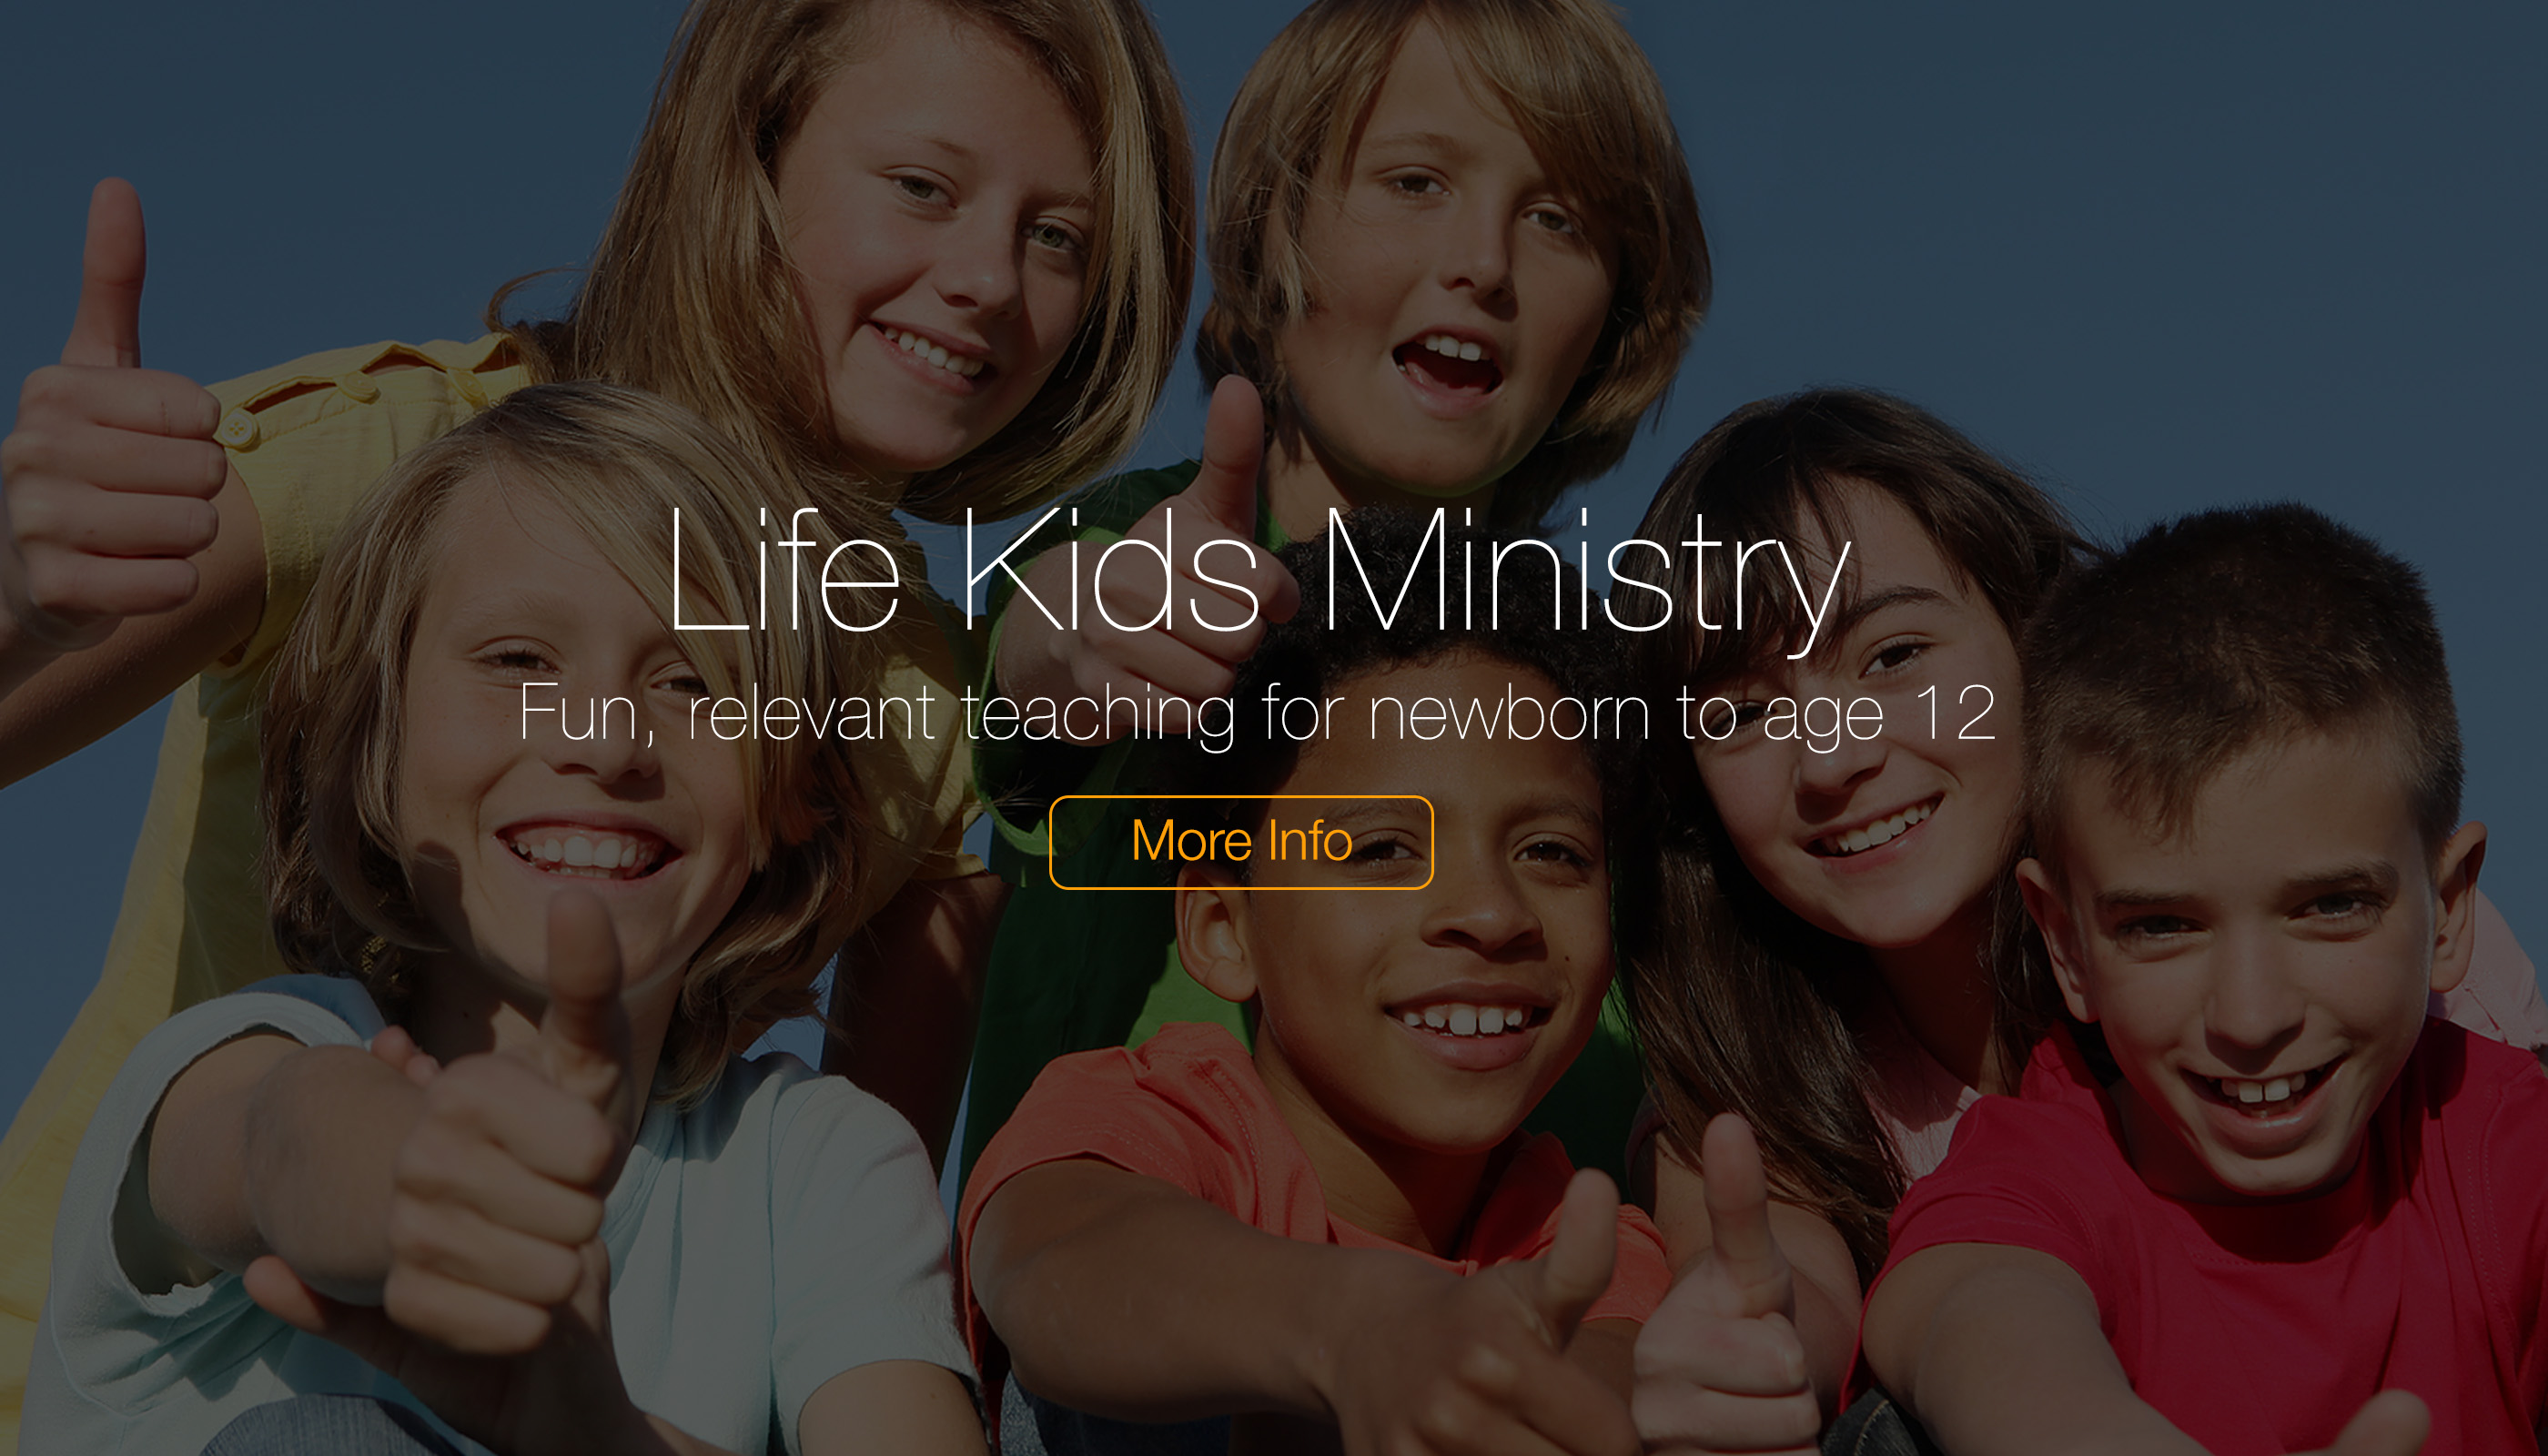 Kid's Ministry at the Life Church - Lisle